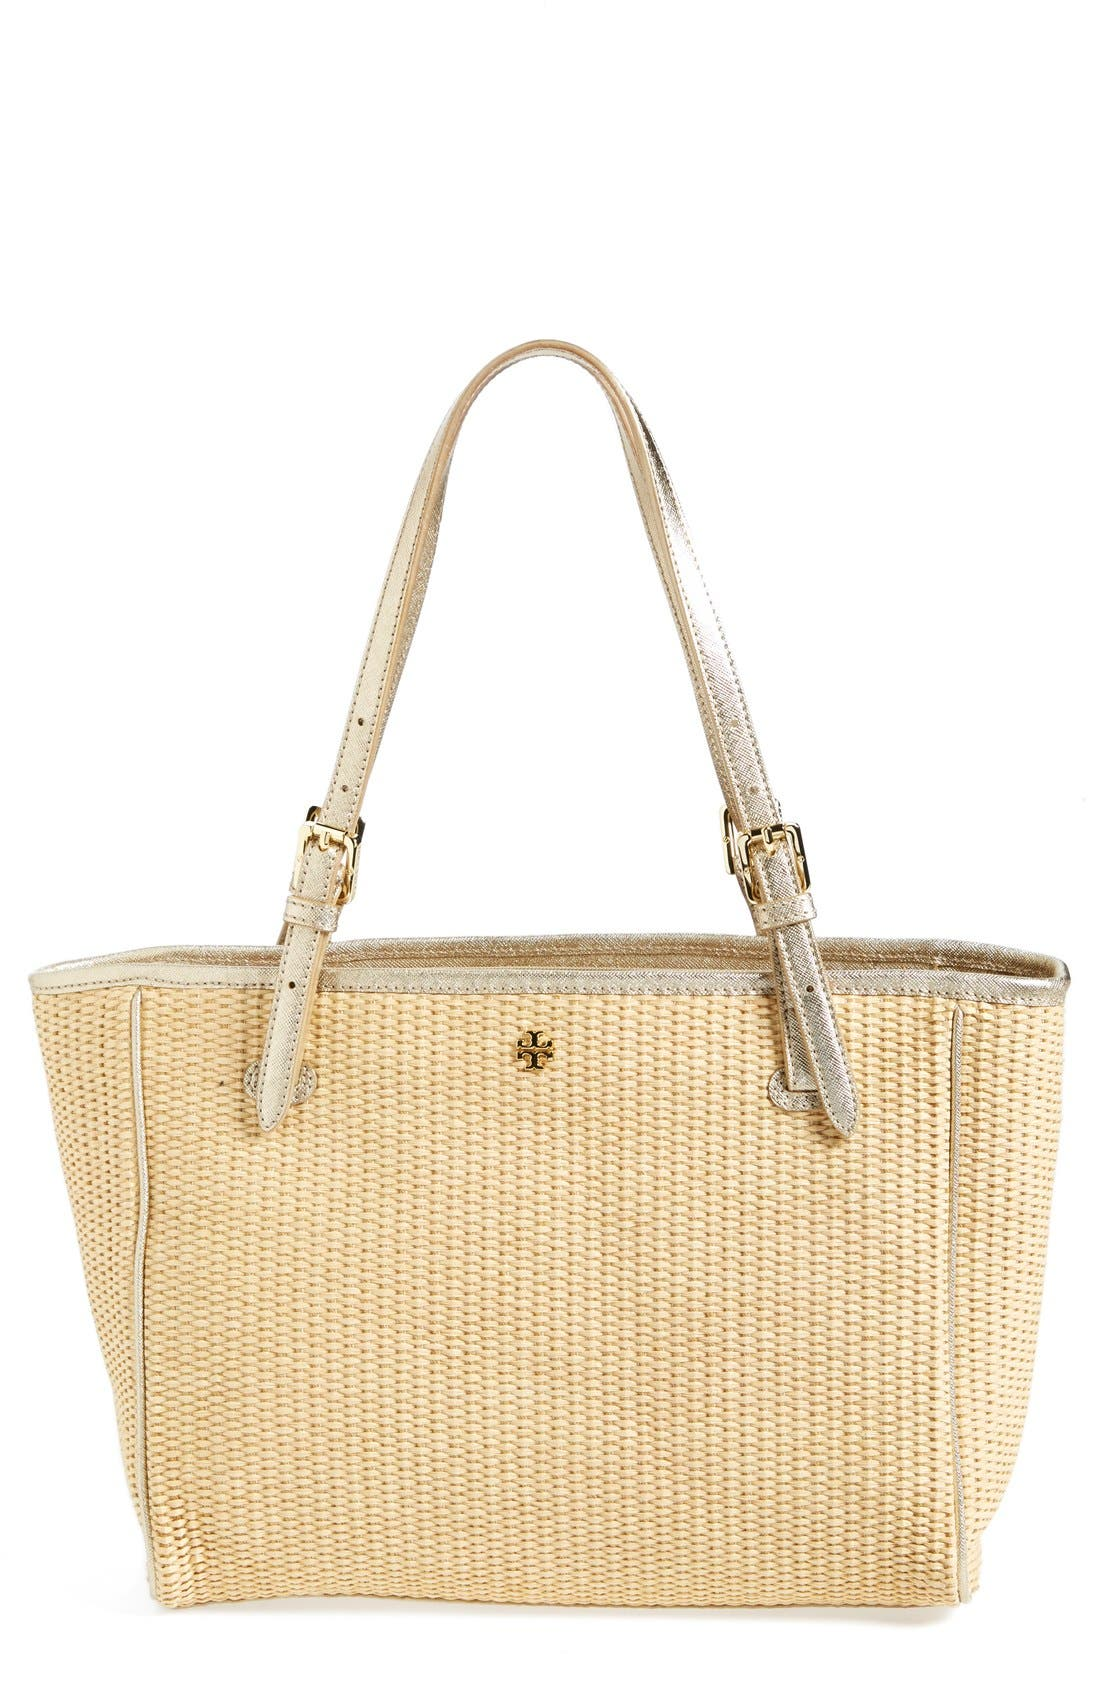 Alternate Image 1 Selected - Tory Burch 'Small York' Straw Buckle Tote